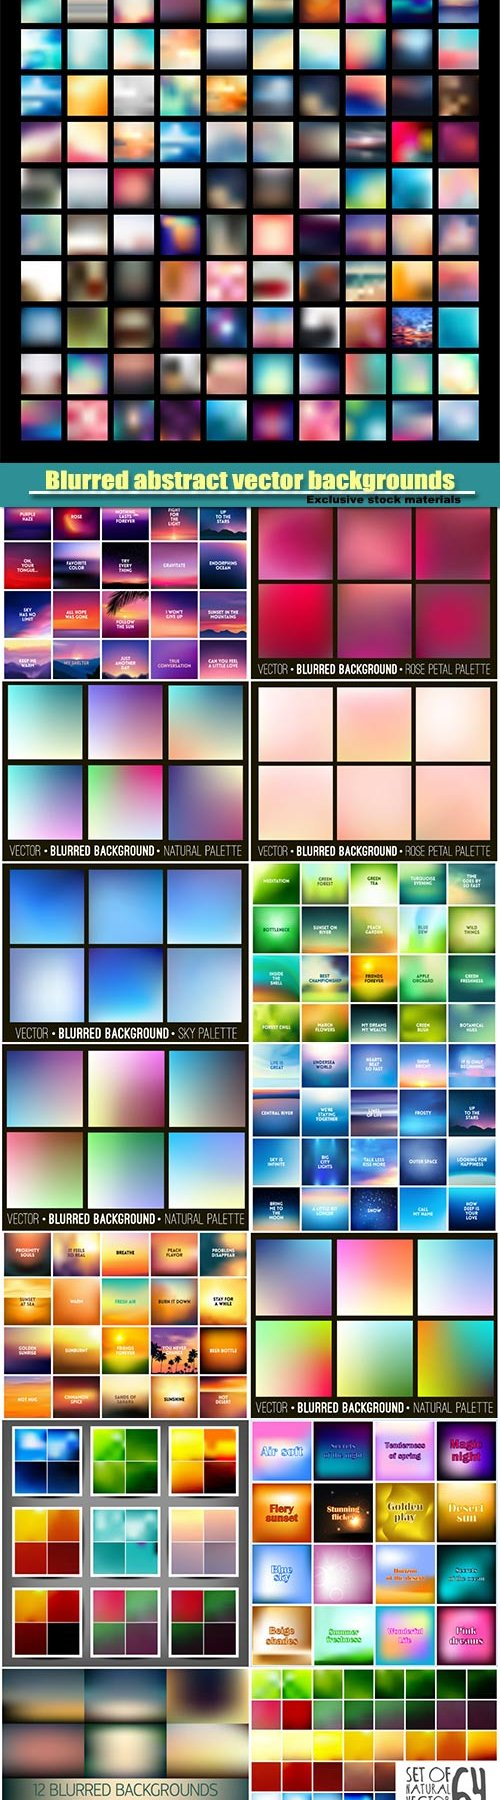 Blurred abstract vector backgrounds set